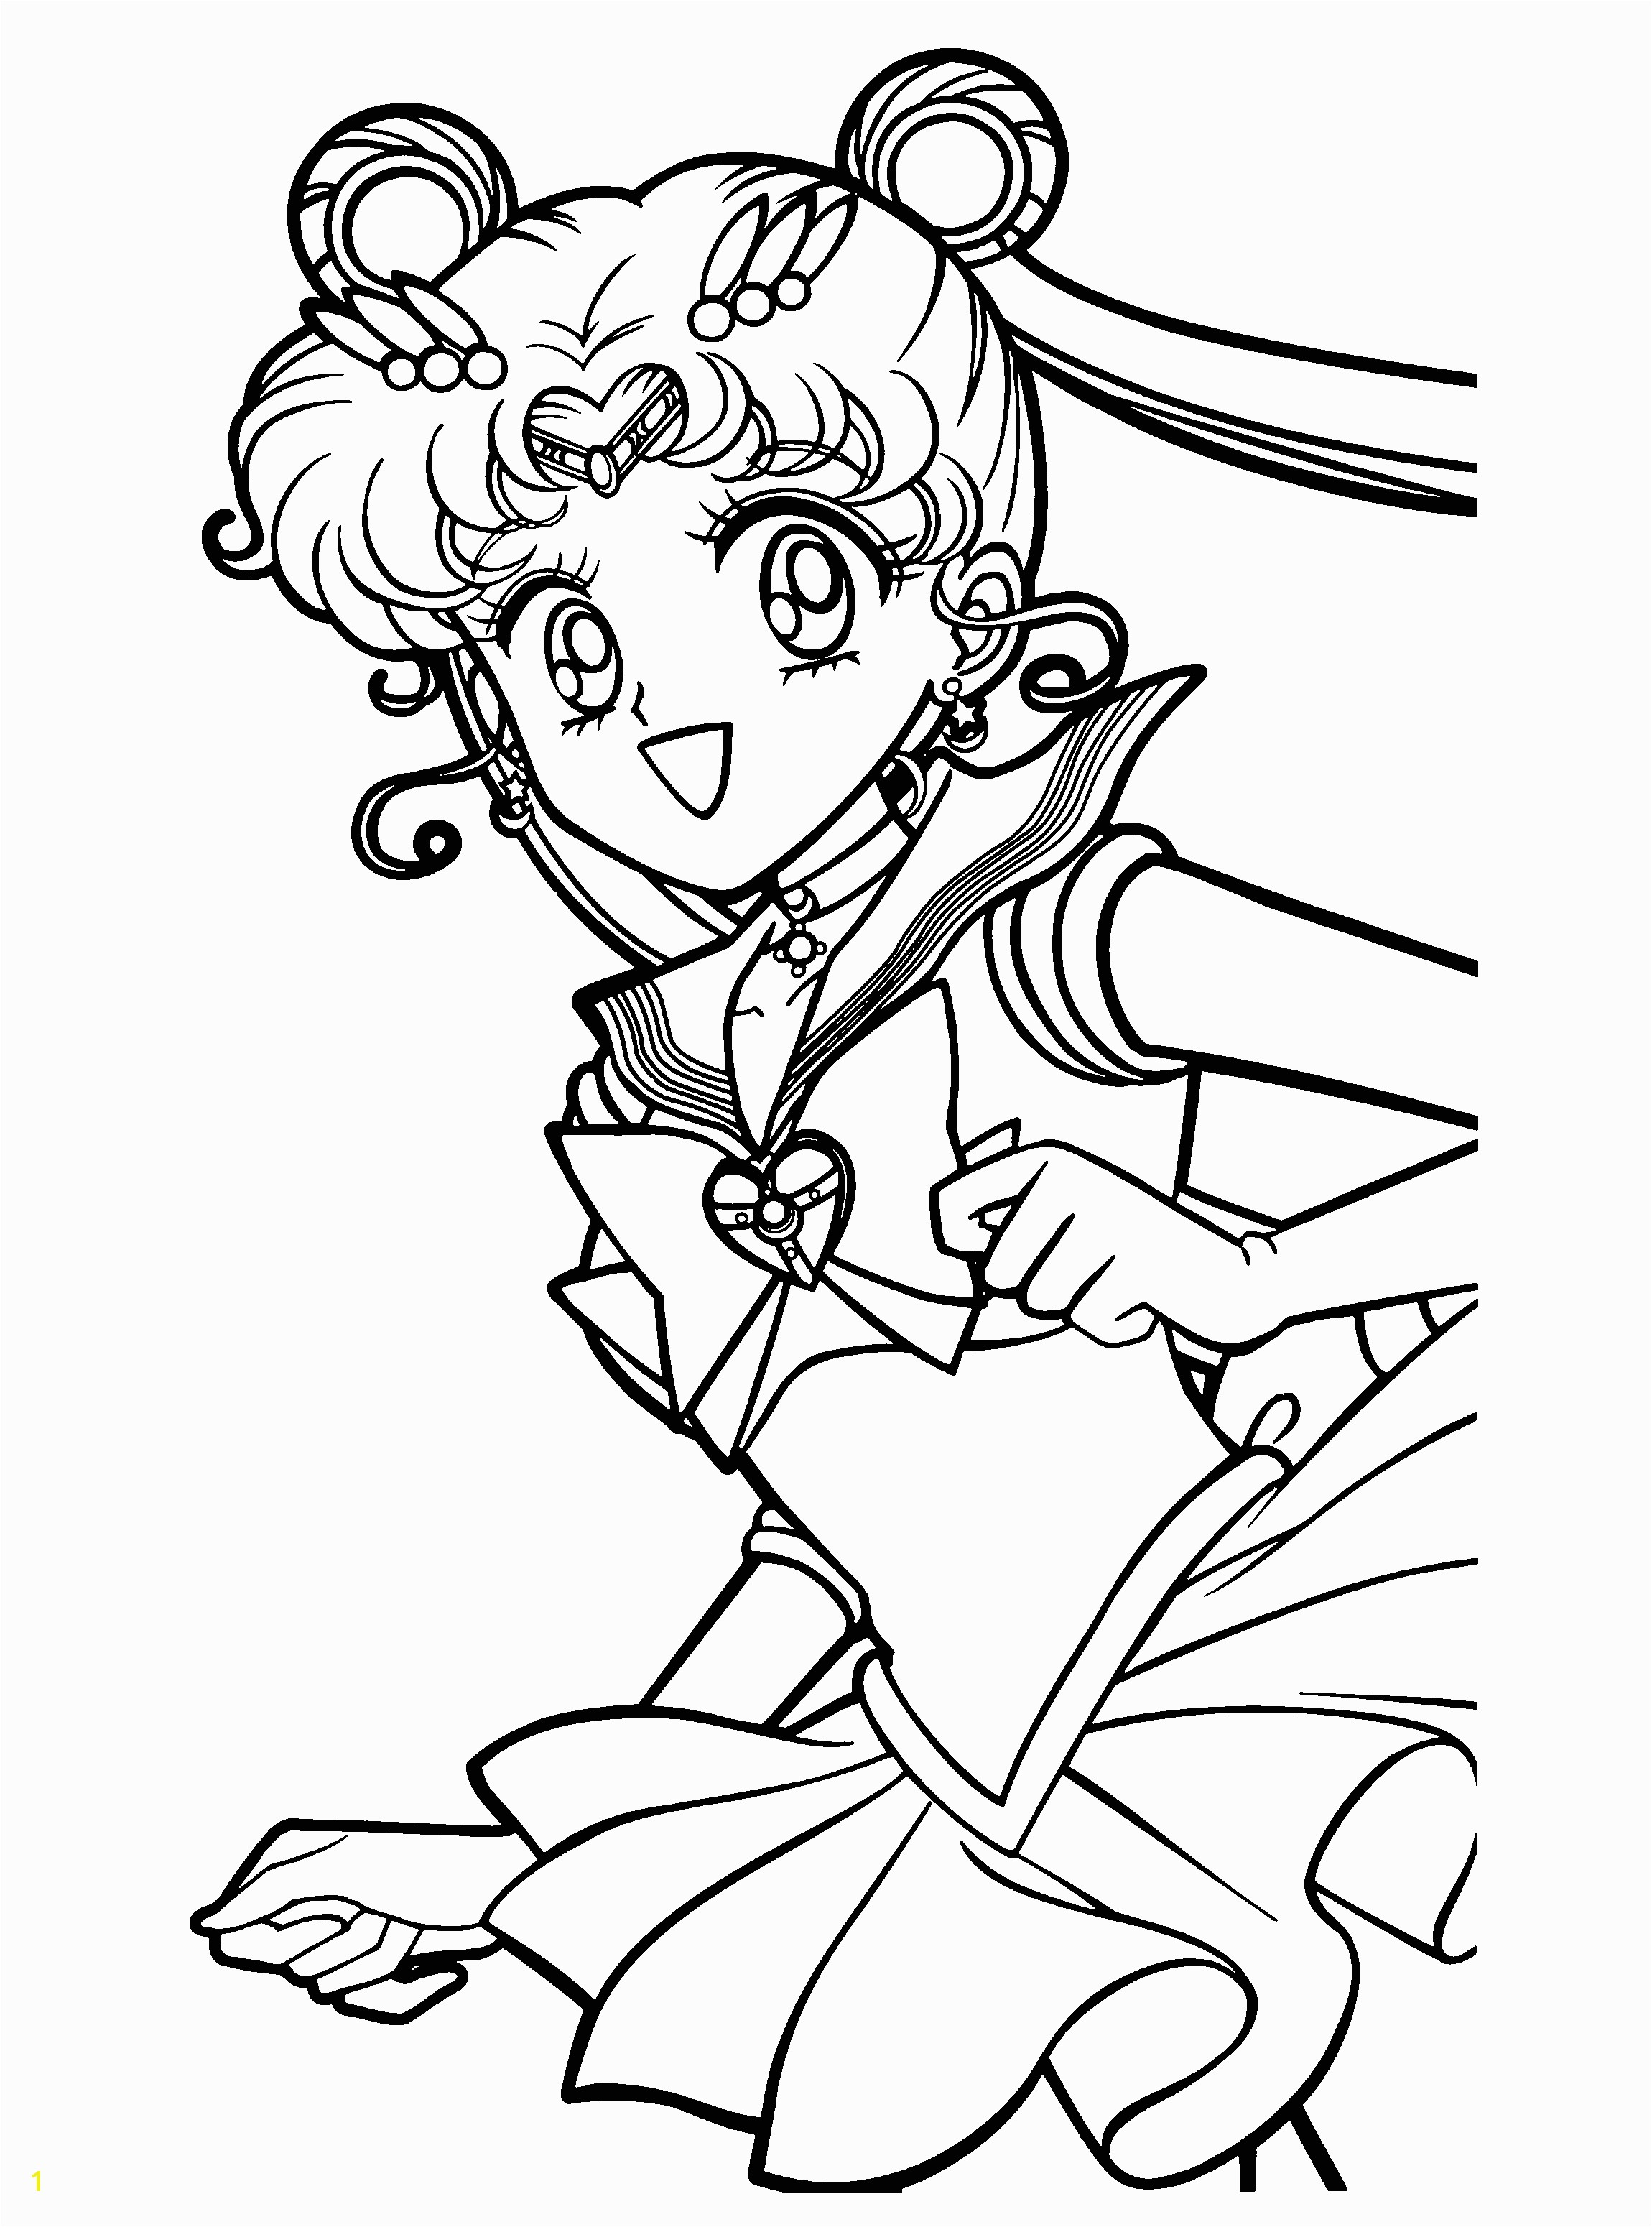 Moon Coloring Pages for Preschoolers Free Printable Sailor Moon Coloring Pages for Kids